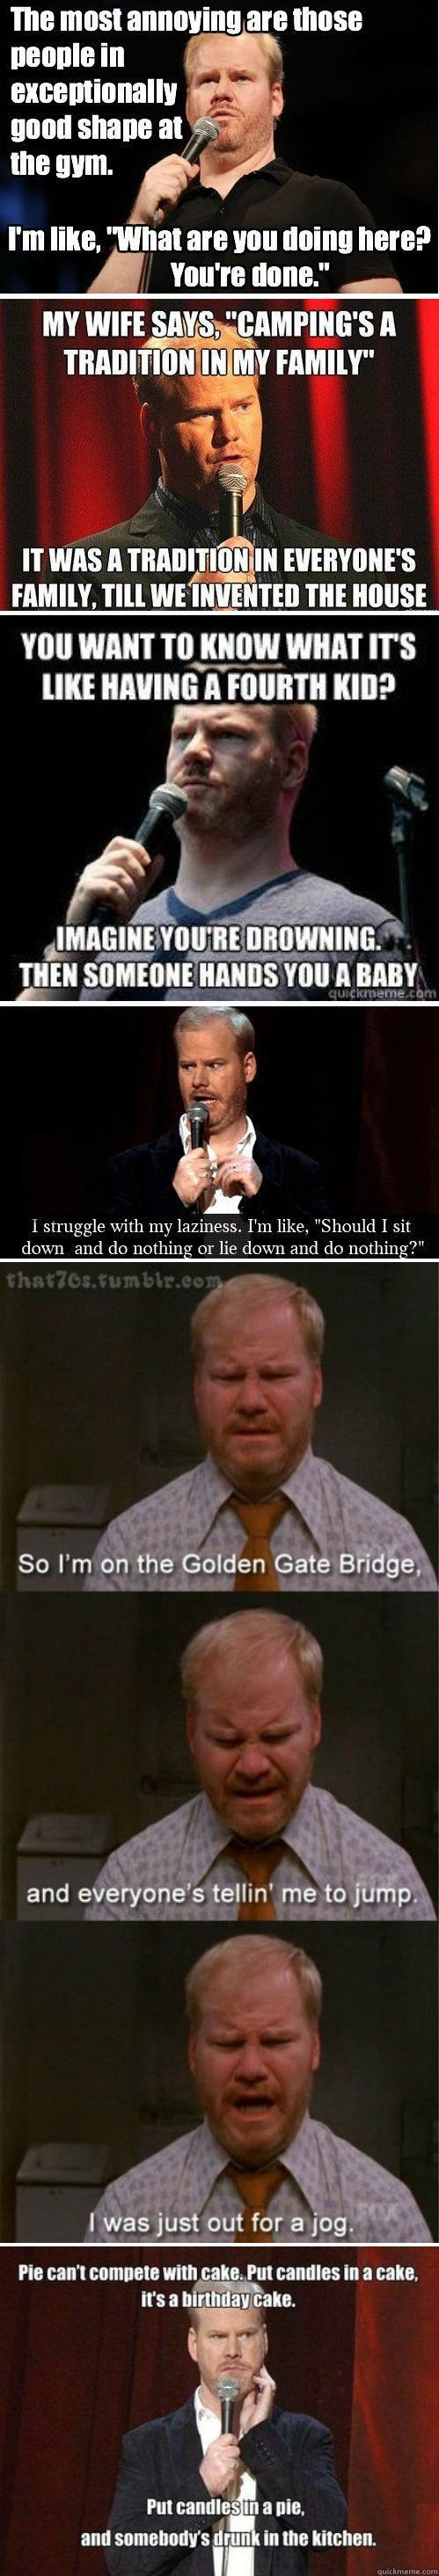 Jim Gaffigan. Lol